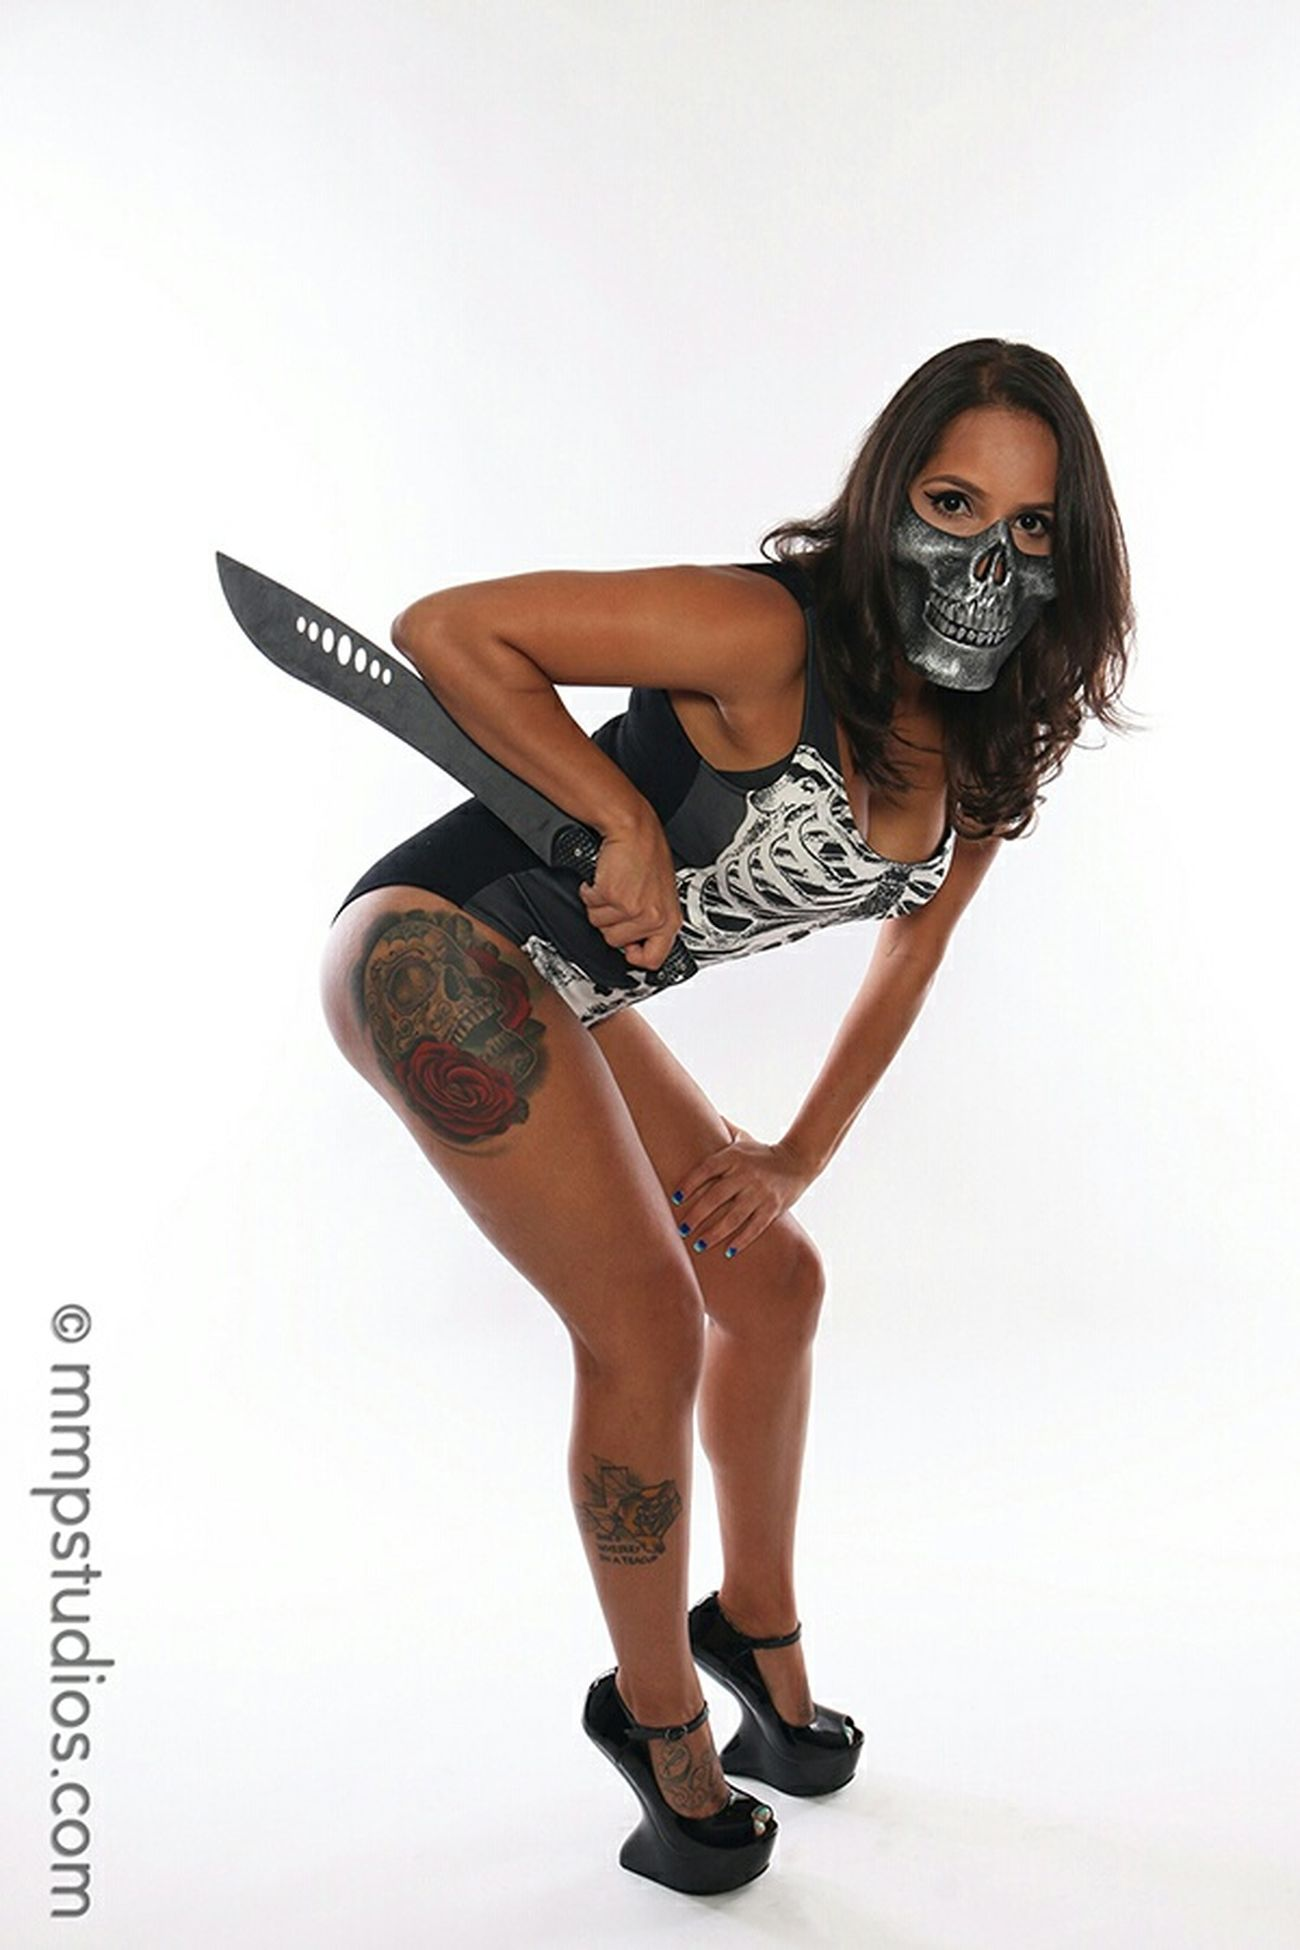 @melvinmaya @mmpstudios_com Photography Photoshoot Model Brunette Masked Skull Mask Machete Skull And Bones Leotard Gravity Heels Eyes Tattoos Inked Studio Shoot Houston Texas Random People Followme